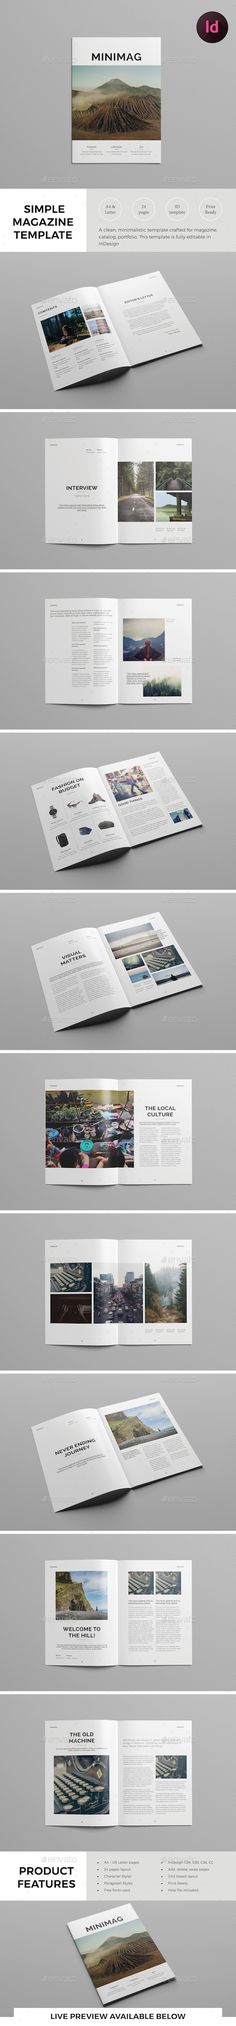 Simple Magazine Template InDesign INDD. Download here: http://graphicriver.net/item/simple-magazine-template/15604590?ref=ksioks